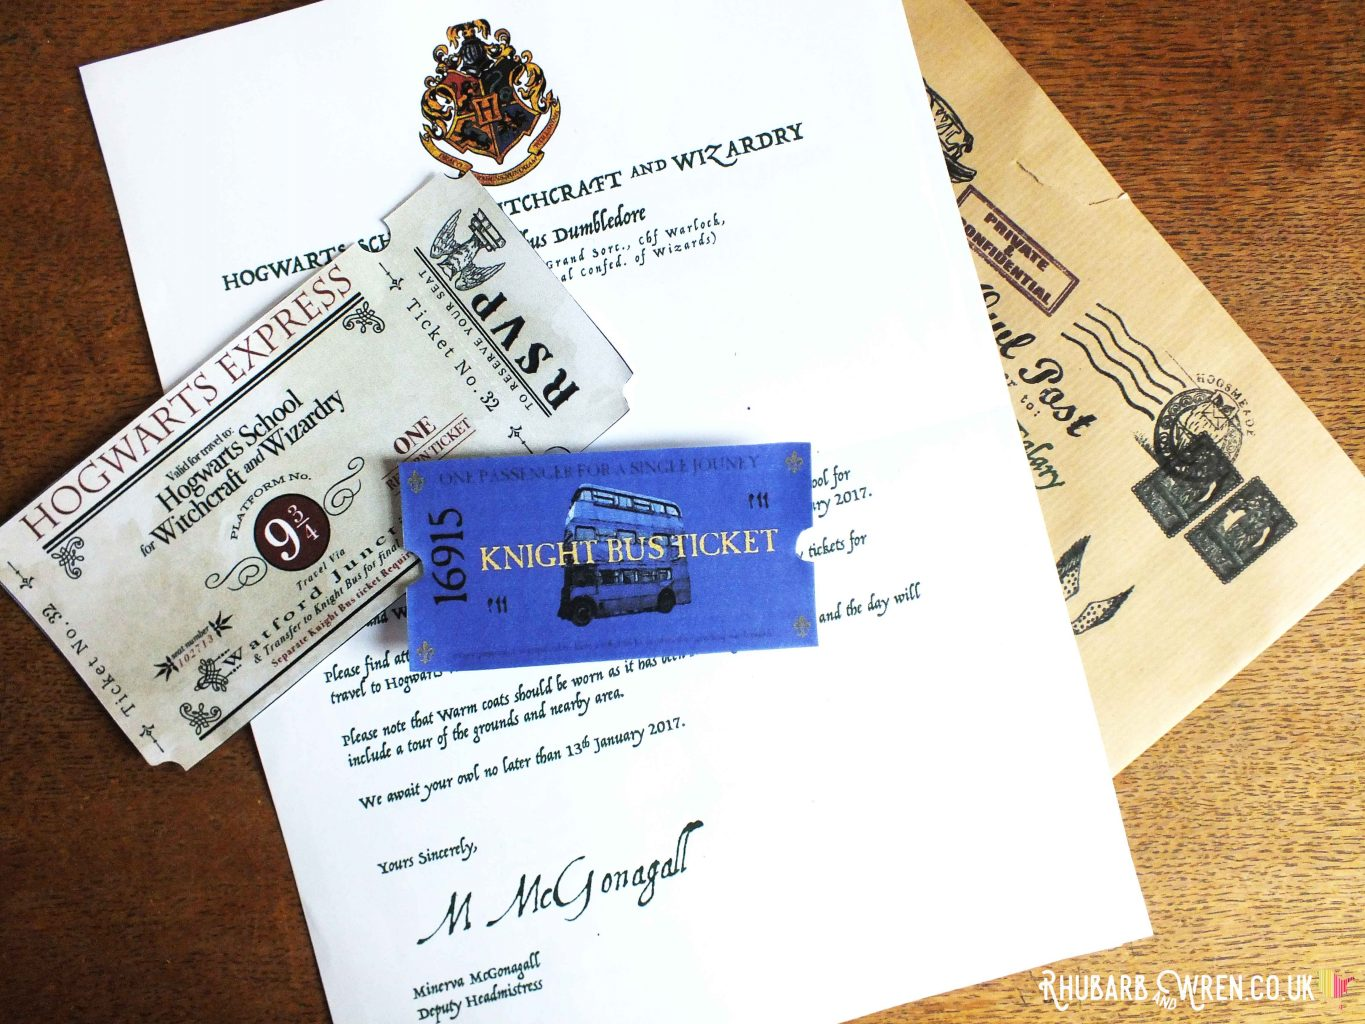 Hogwarts letter invitation with knight bus and Hogwarts Express tickets for DIY Harry Potter party bag